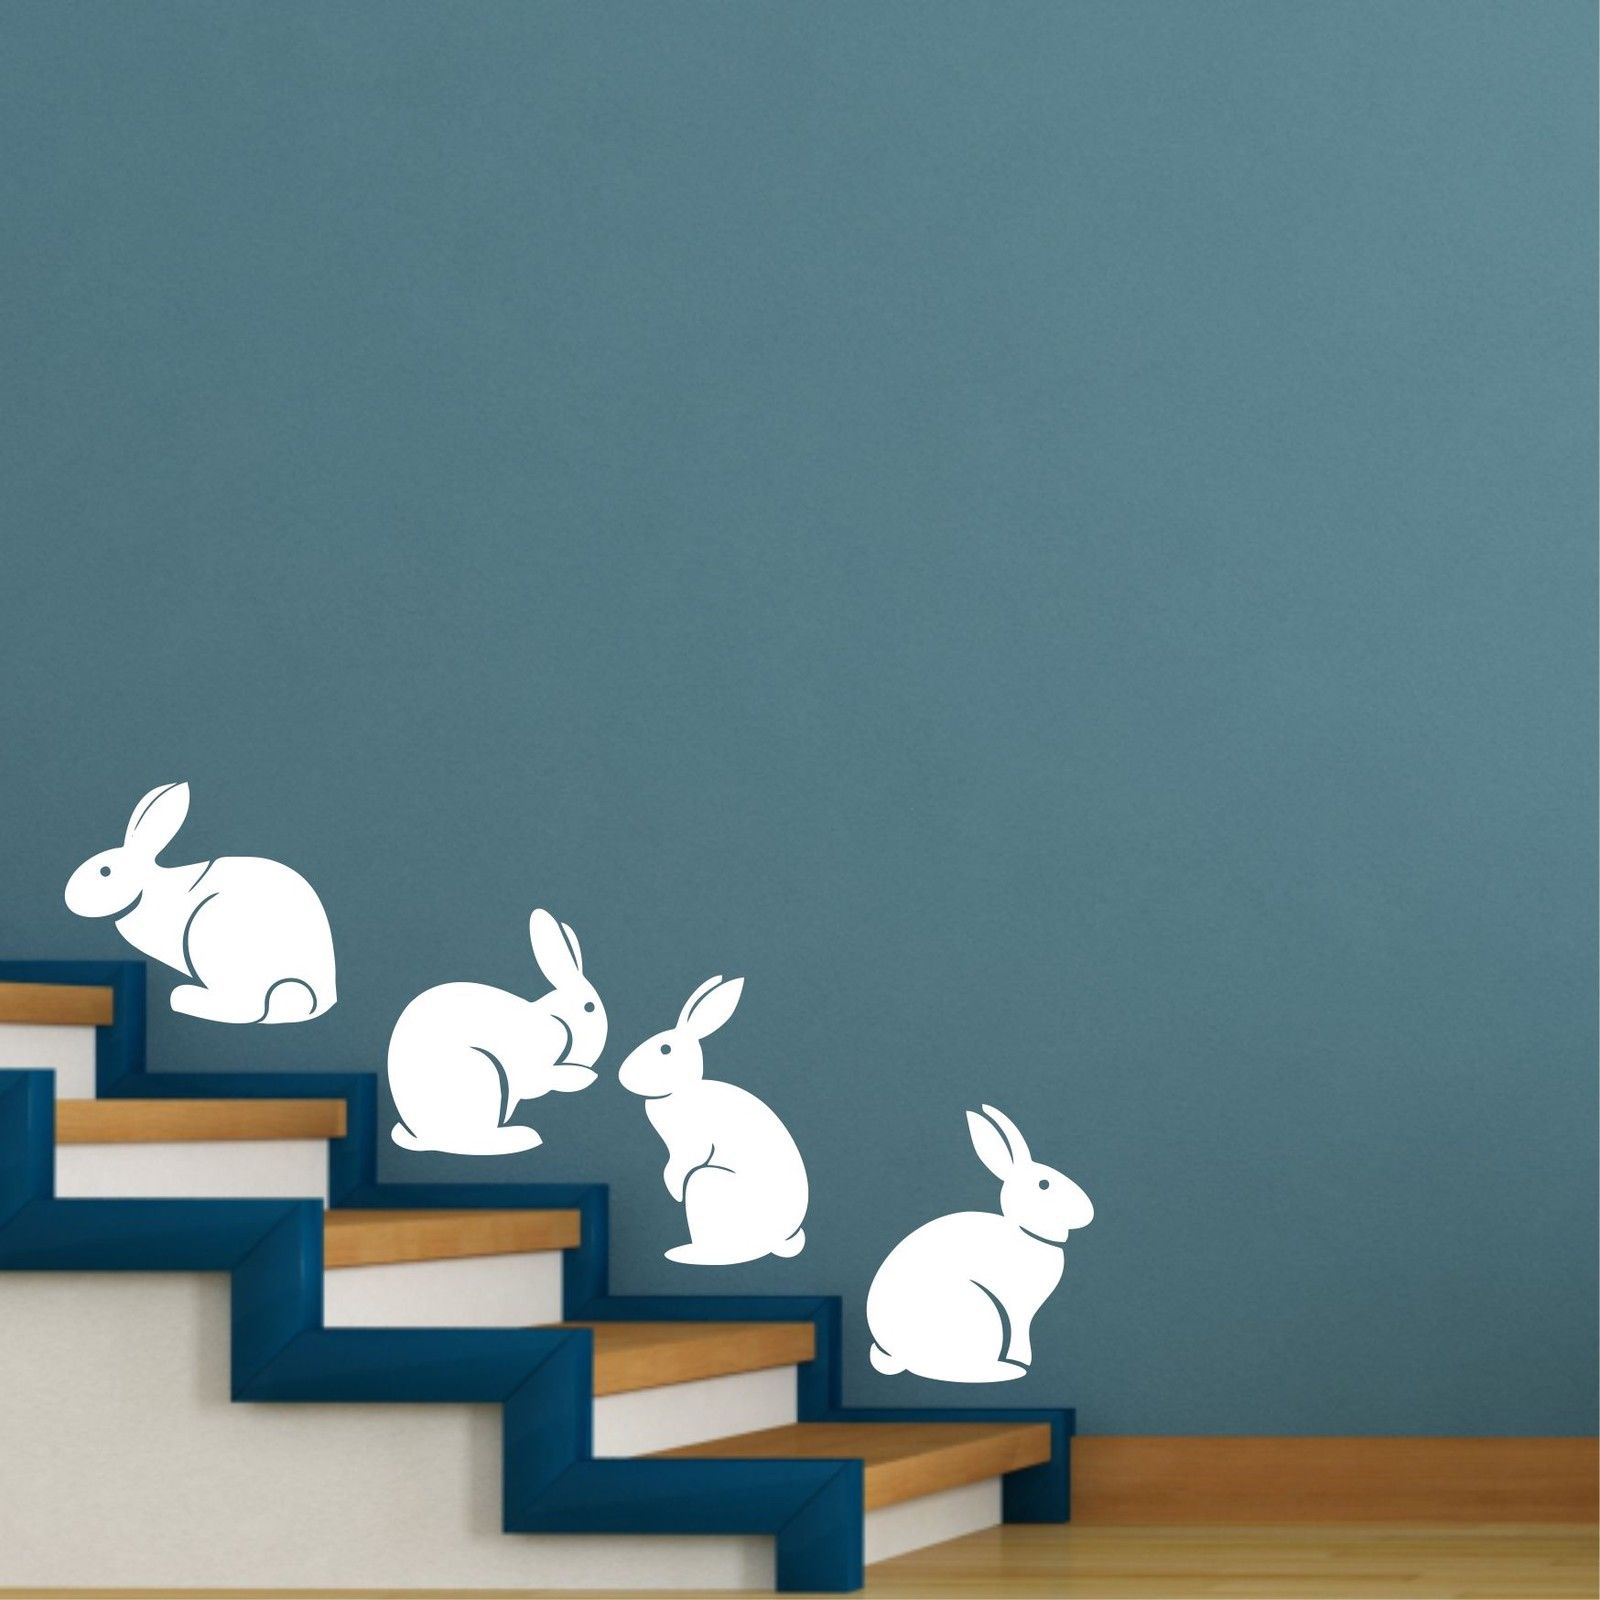 A007 Cute Bunny Rabbits Wall Sticker Baby Nursery Rabbitits Wall - Տնային դեկոր - Լուսանկար 1